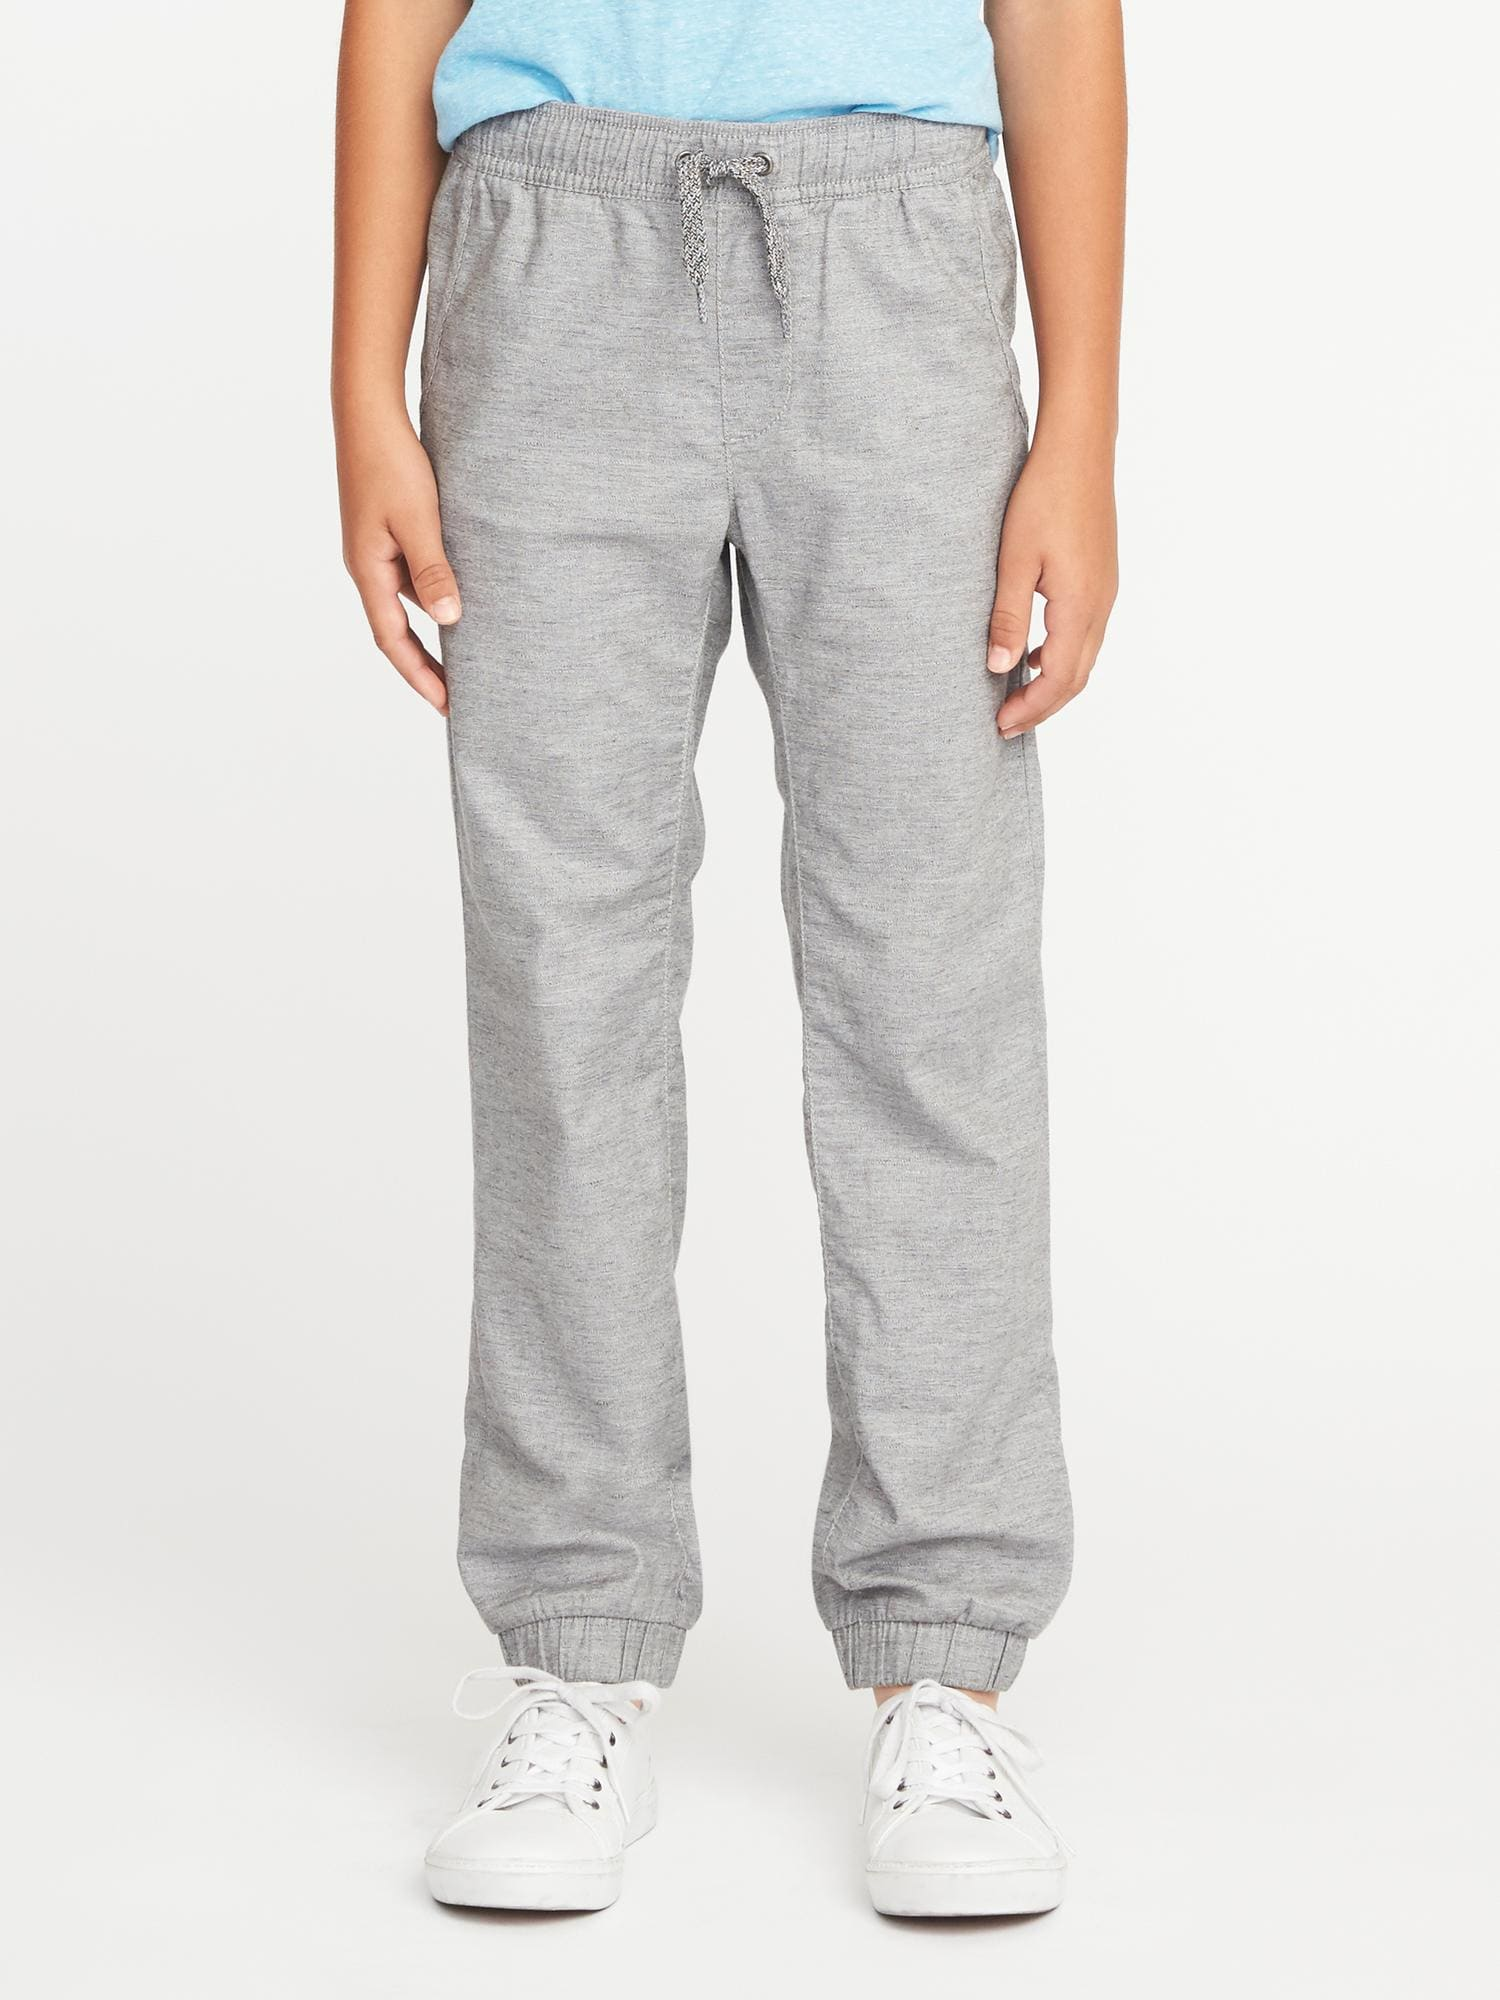 0d13cb6577c99 Flat-Front Heathered Joggers for Boys